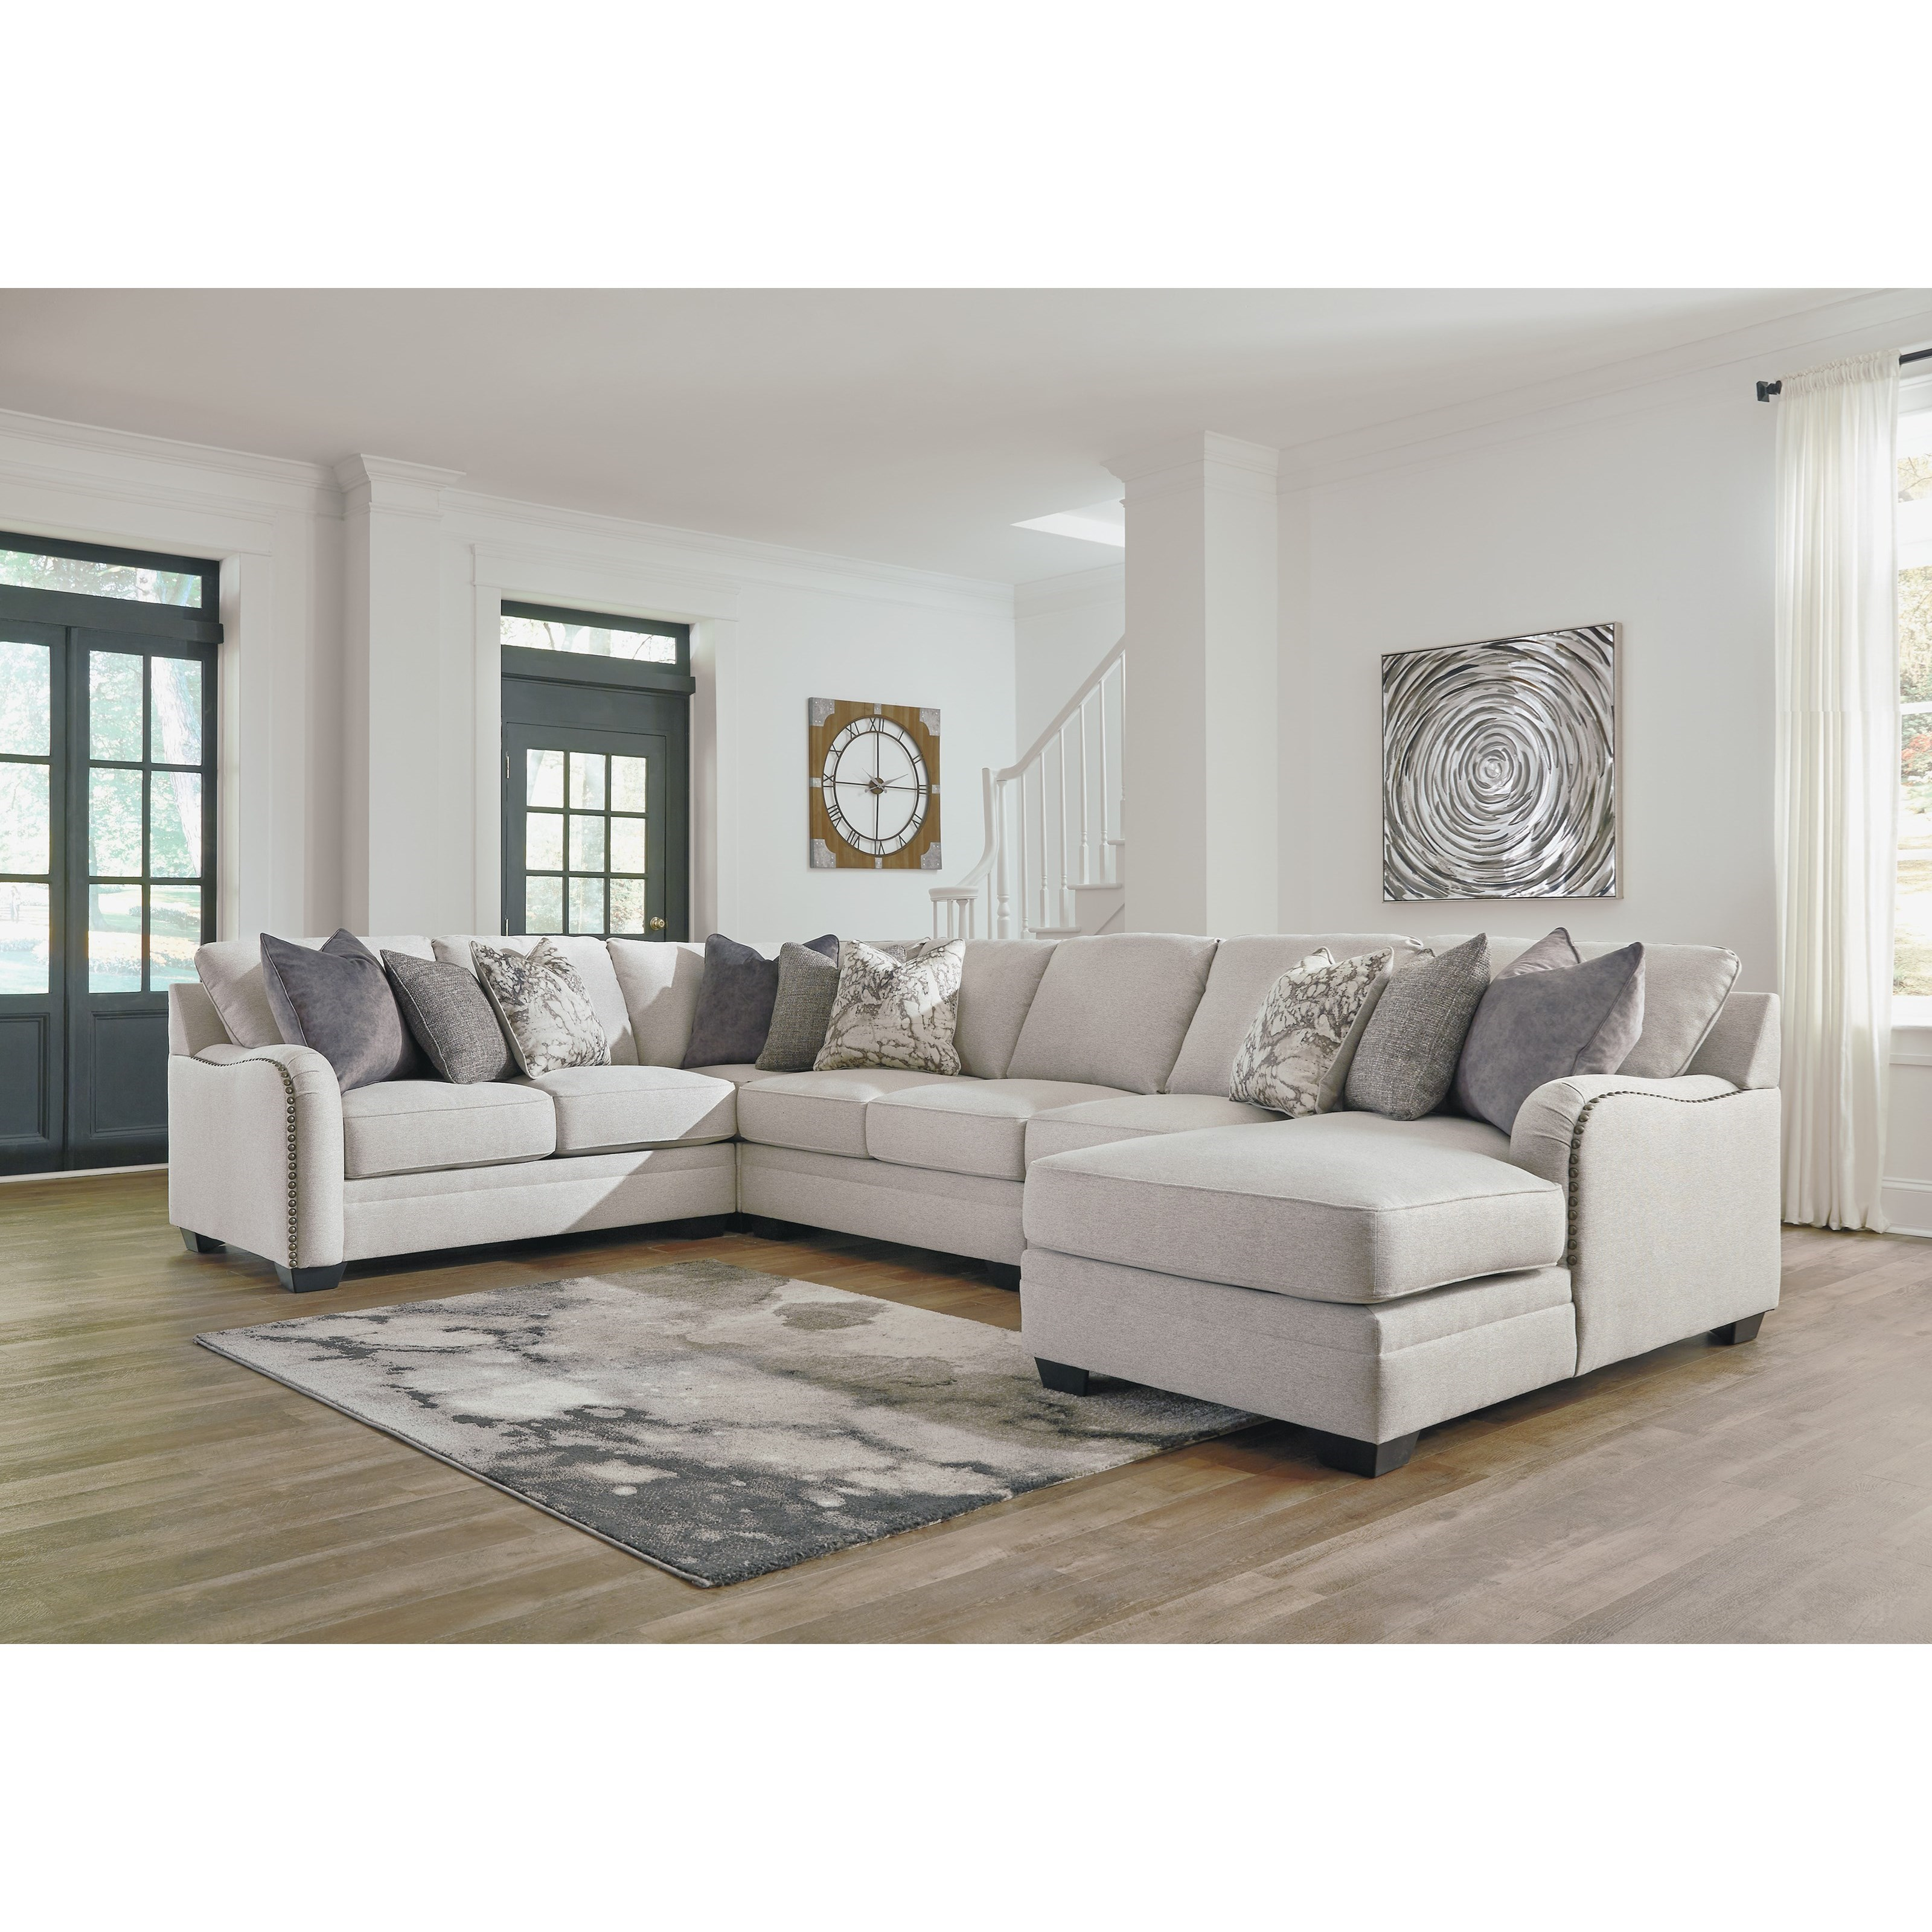 Sectional Sofas By Ashley Furniture: Benchcraft By Ashley Dellara Casual 5-Piece Sectional With